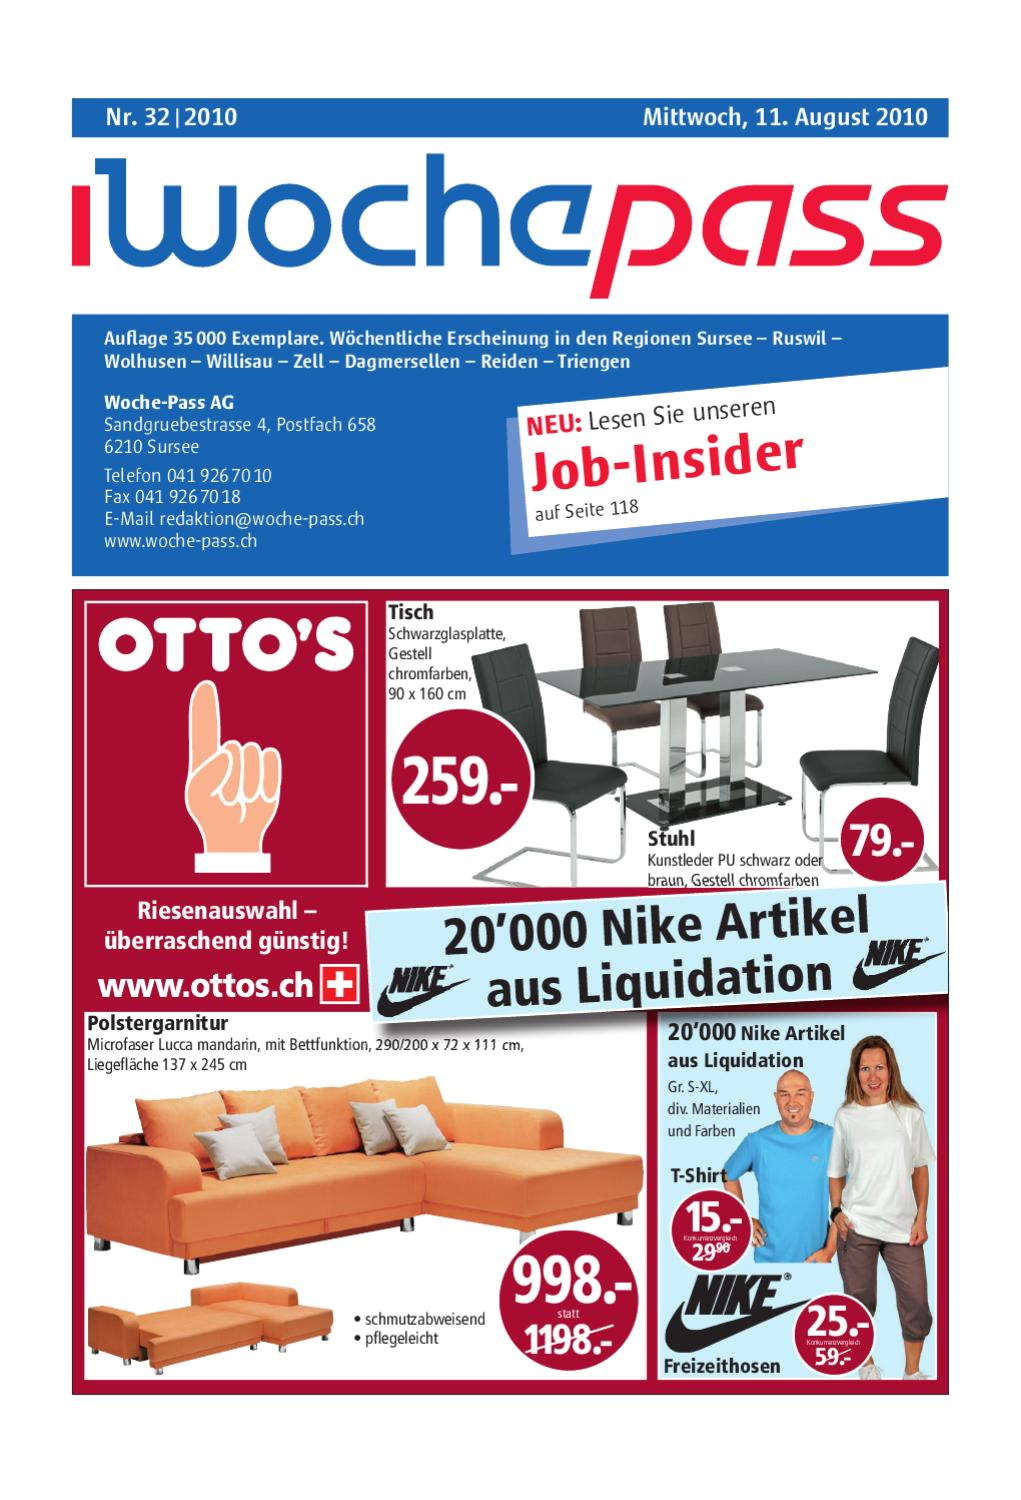 Woche Pass | KW32 | 11. August 2010 by Woche Pass AG issuu